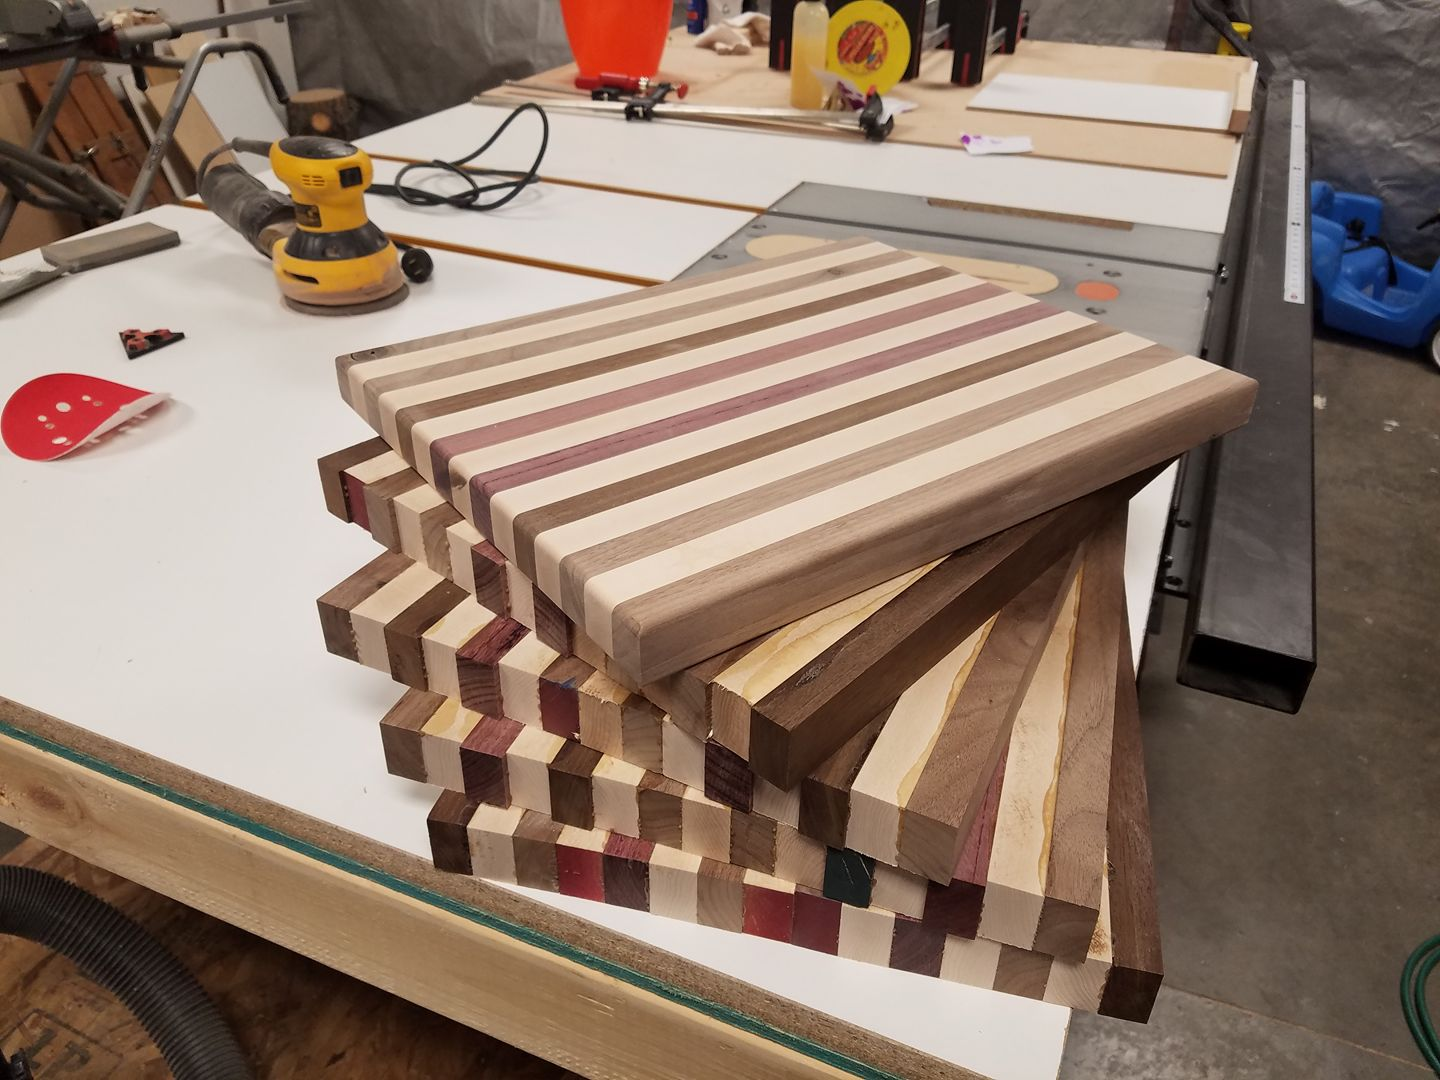 Close with me and receive a beautiful butcher block cutting board, made by hand, by me!